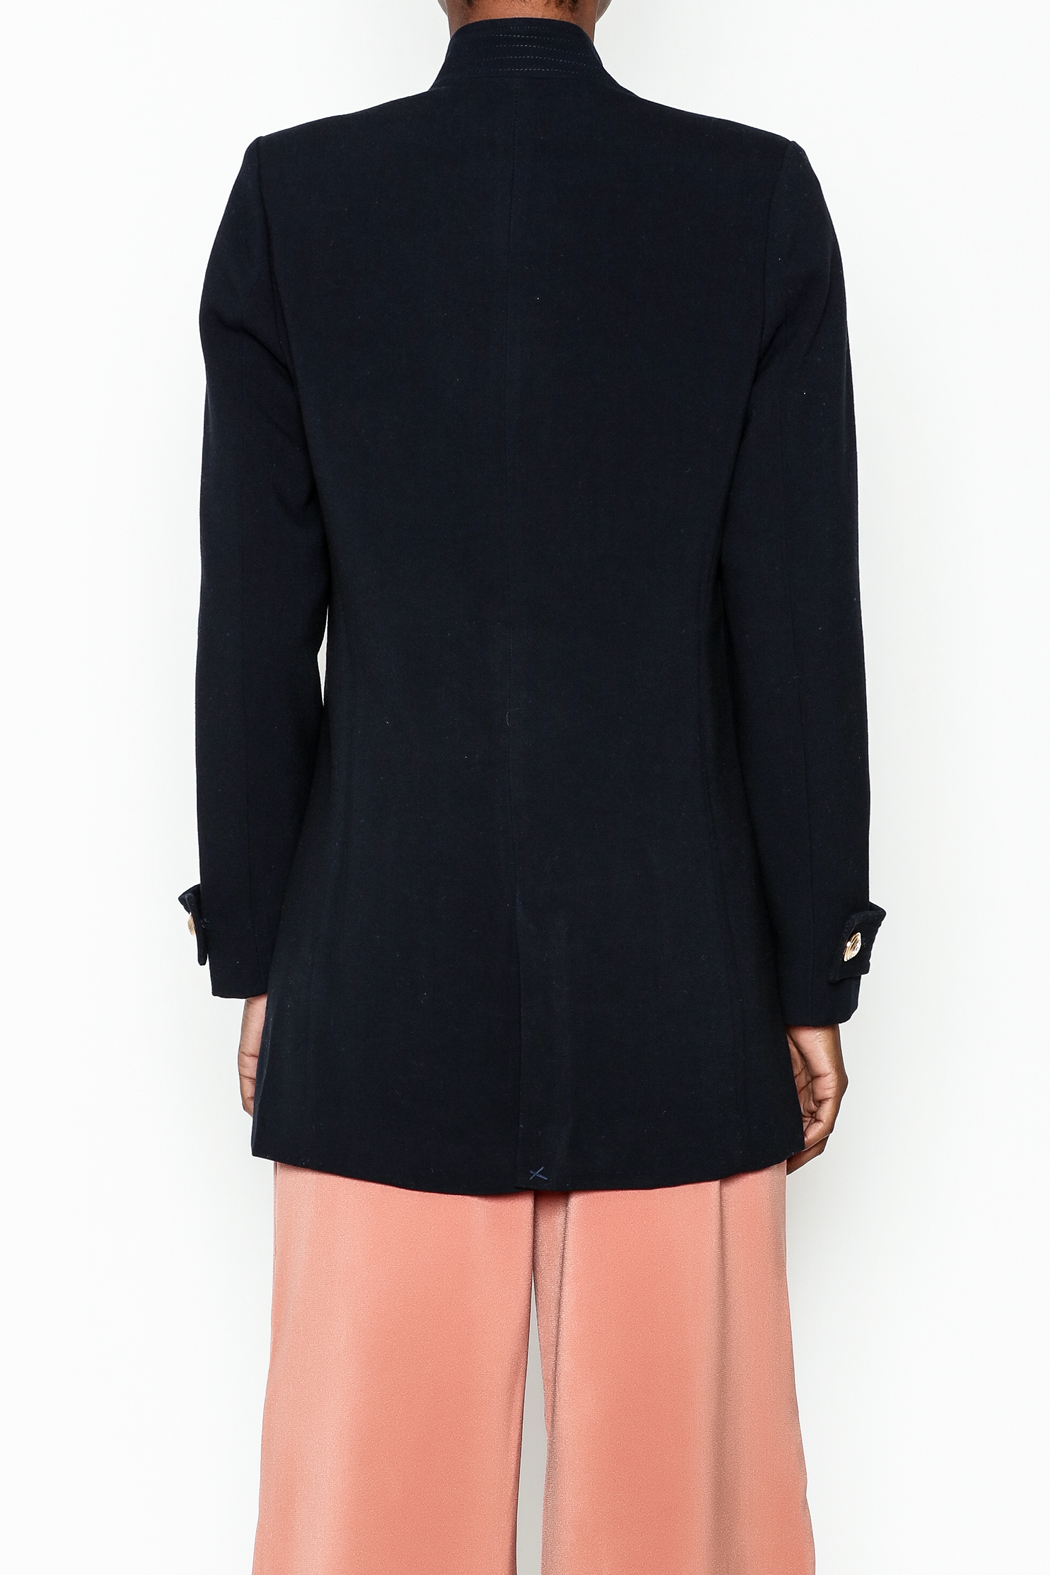 WREN & WILLA Gold Button Peacoat - Back Cropped Image